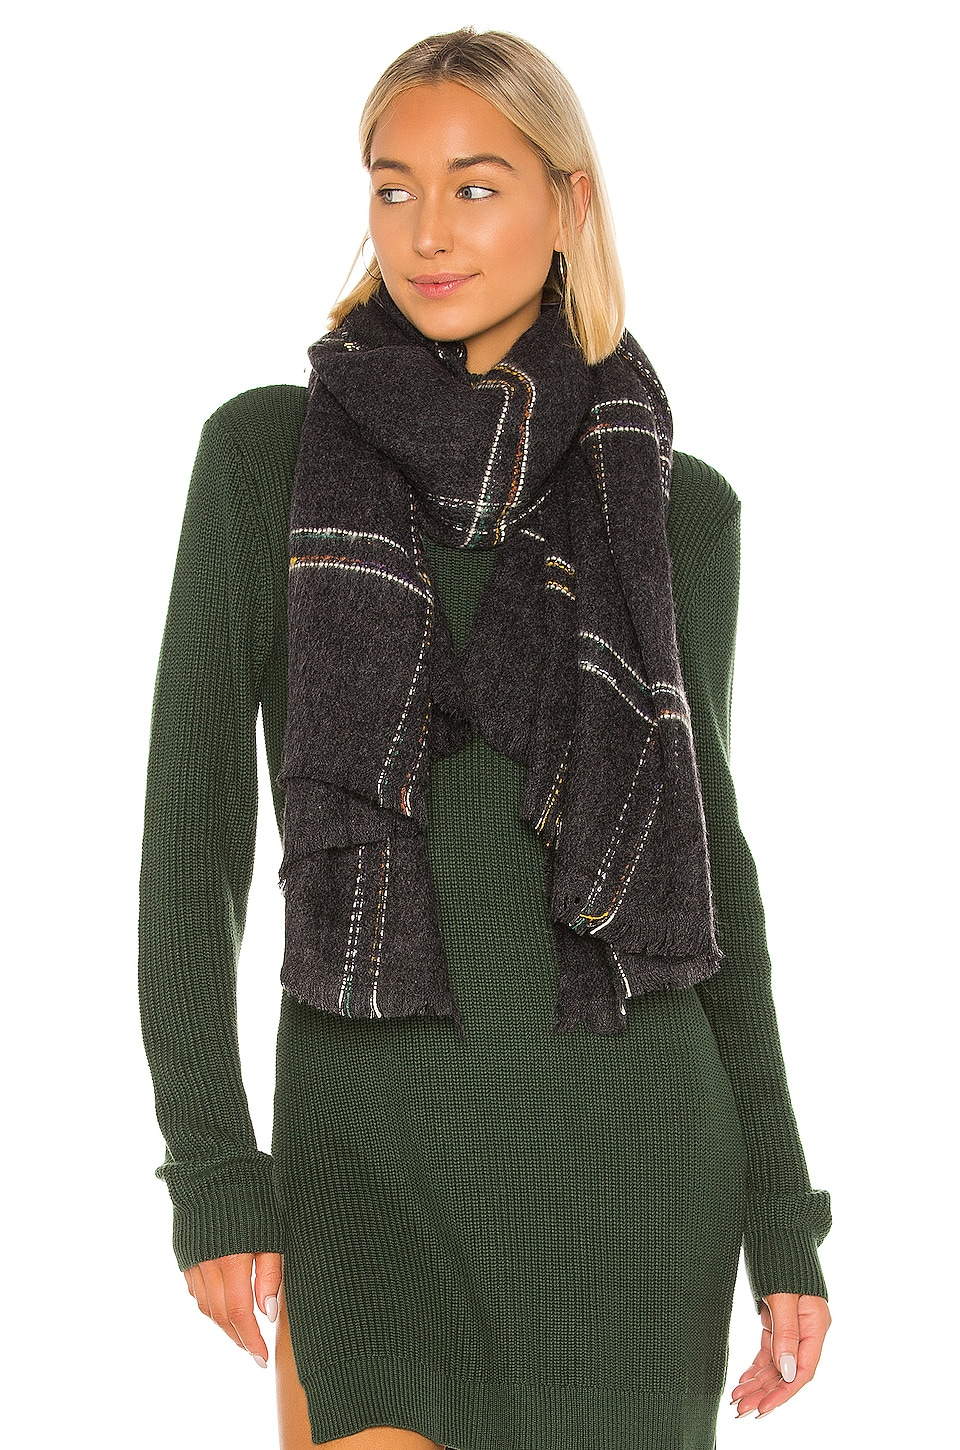 Hat Attack Windowpane Blanket Scarf in Charcoal